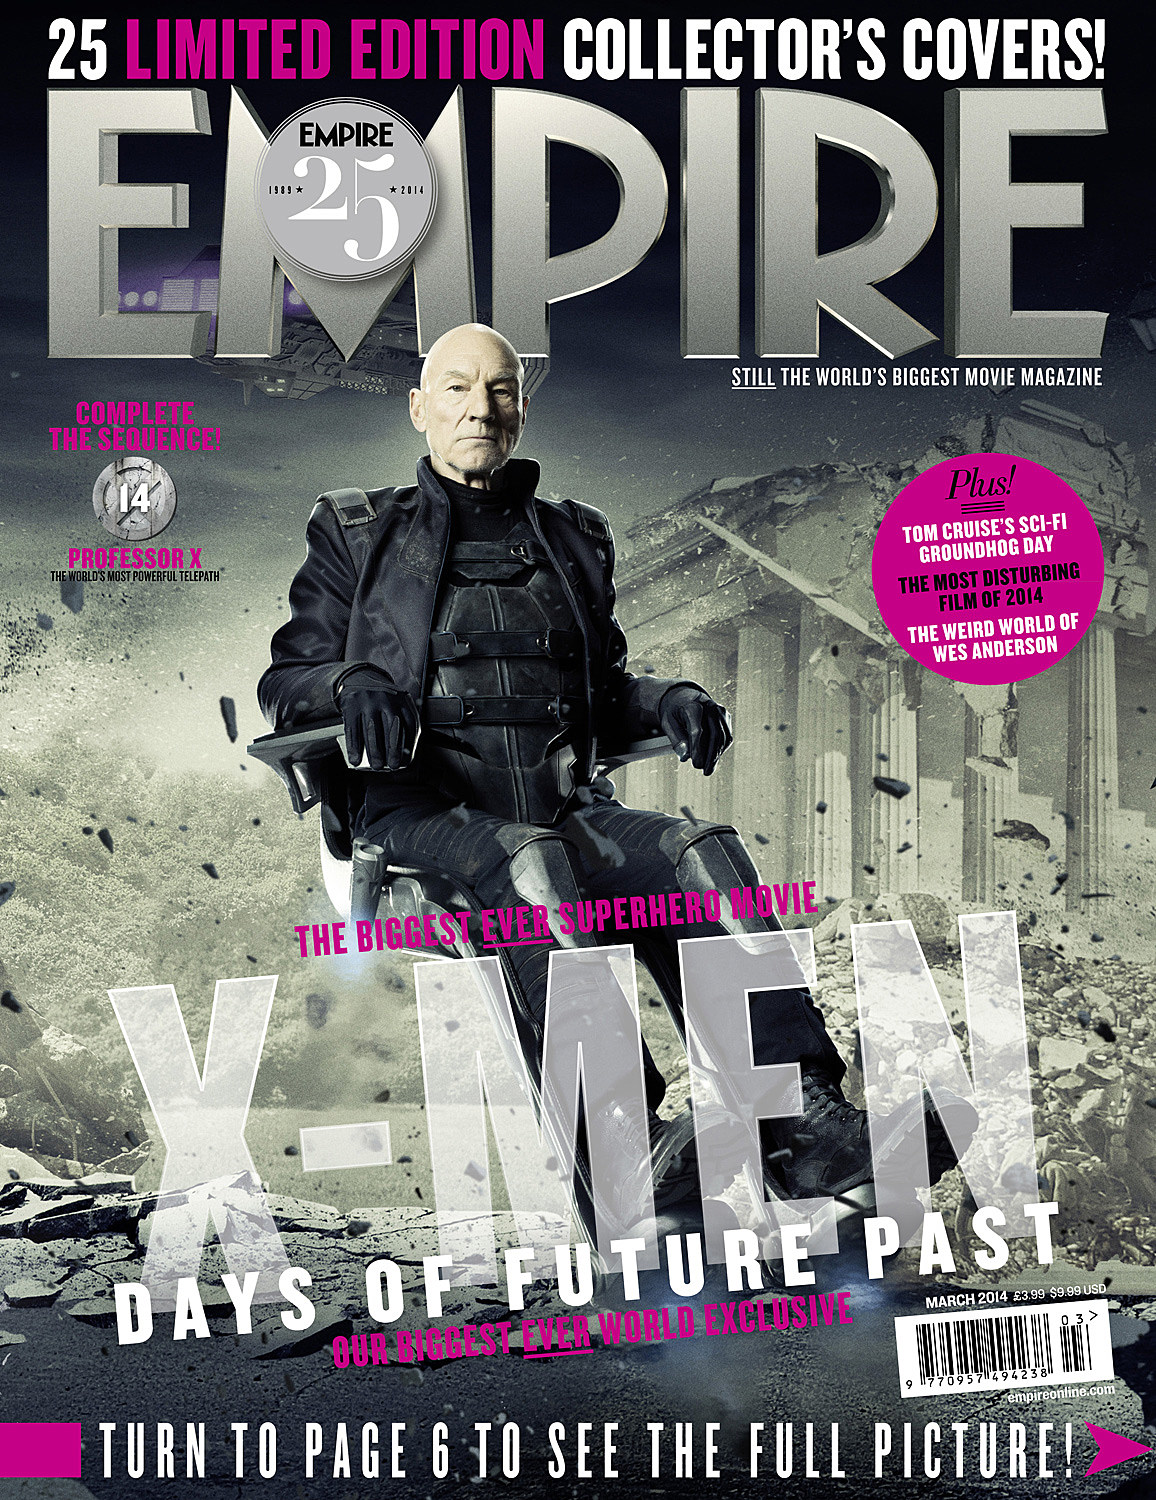 X-Men Days of Future Past Empire Cover Professor X